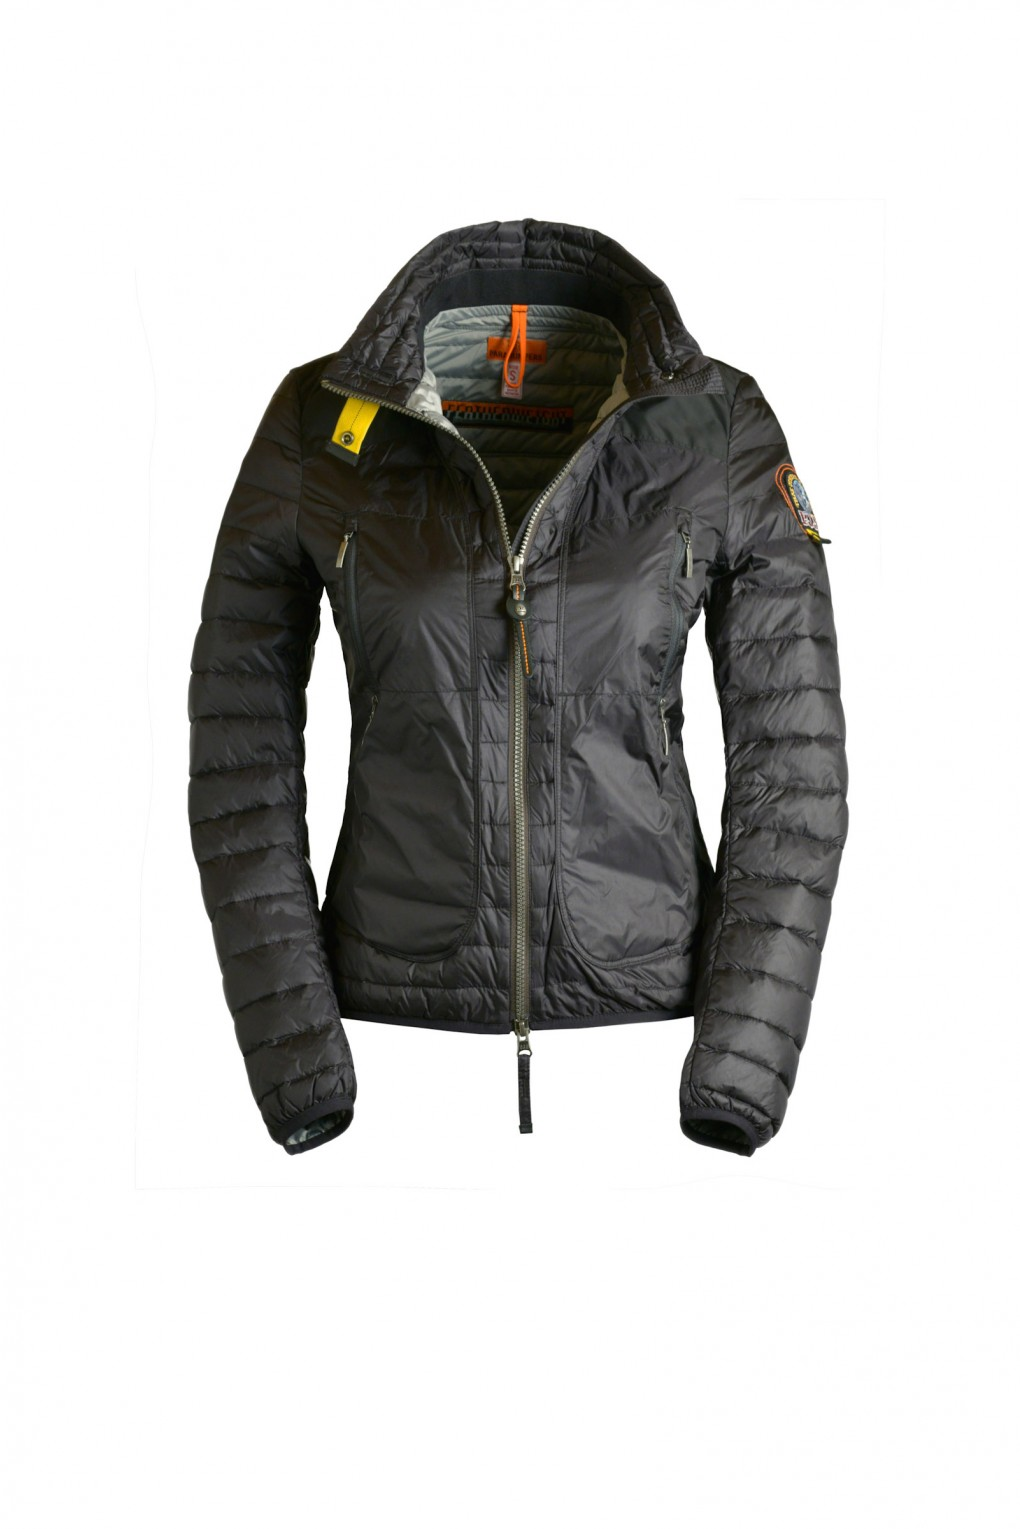 parajumpers GLORIA woman outerwear Black